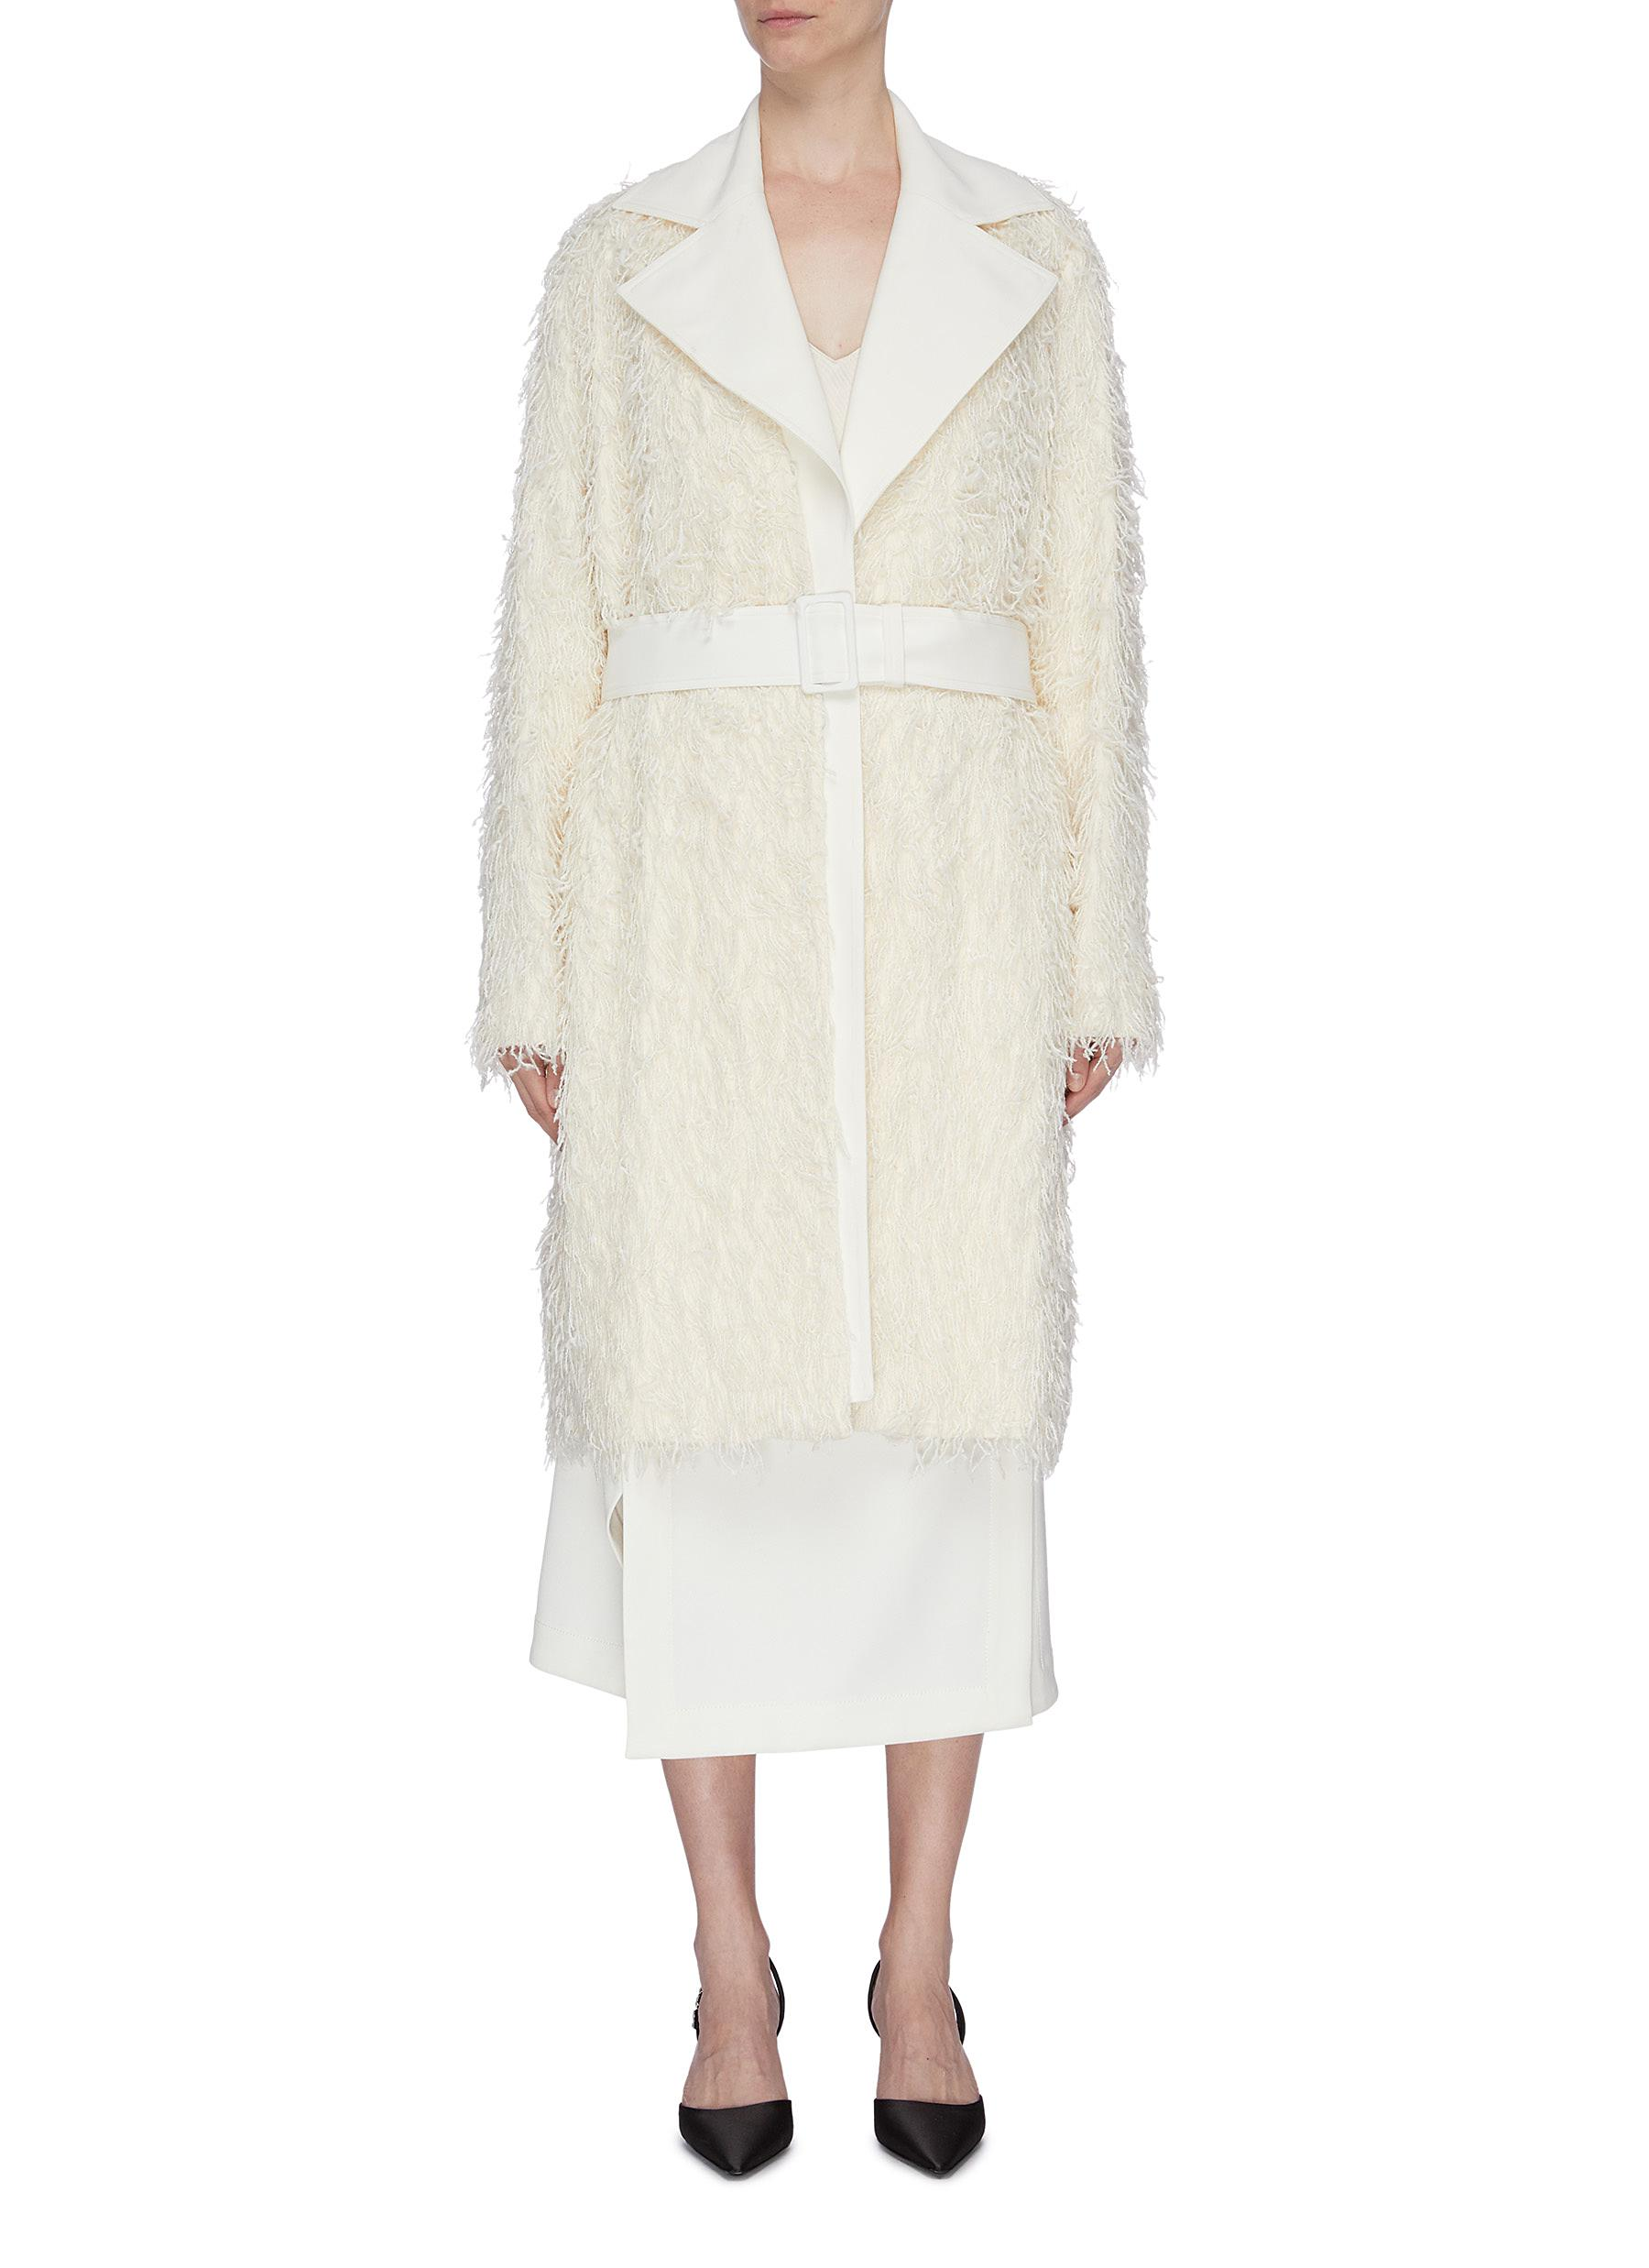 Belted fringed double breasted wool coat by Helmut Lang